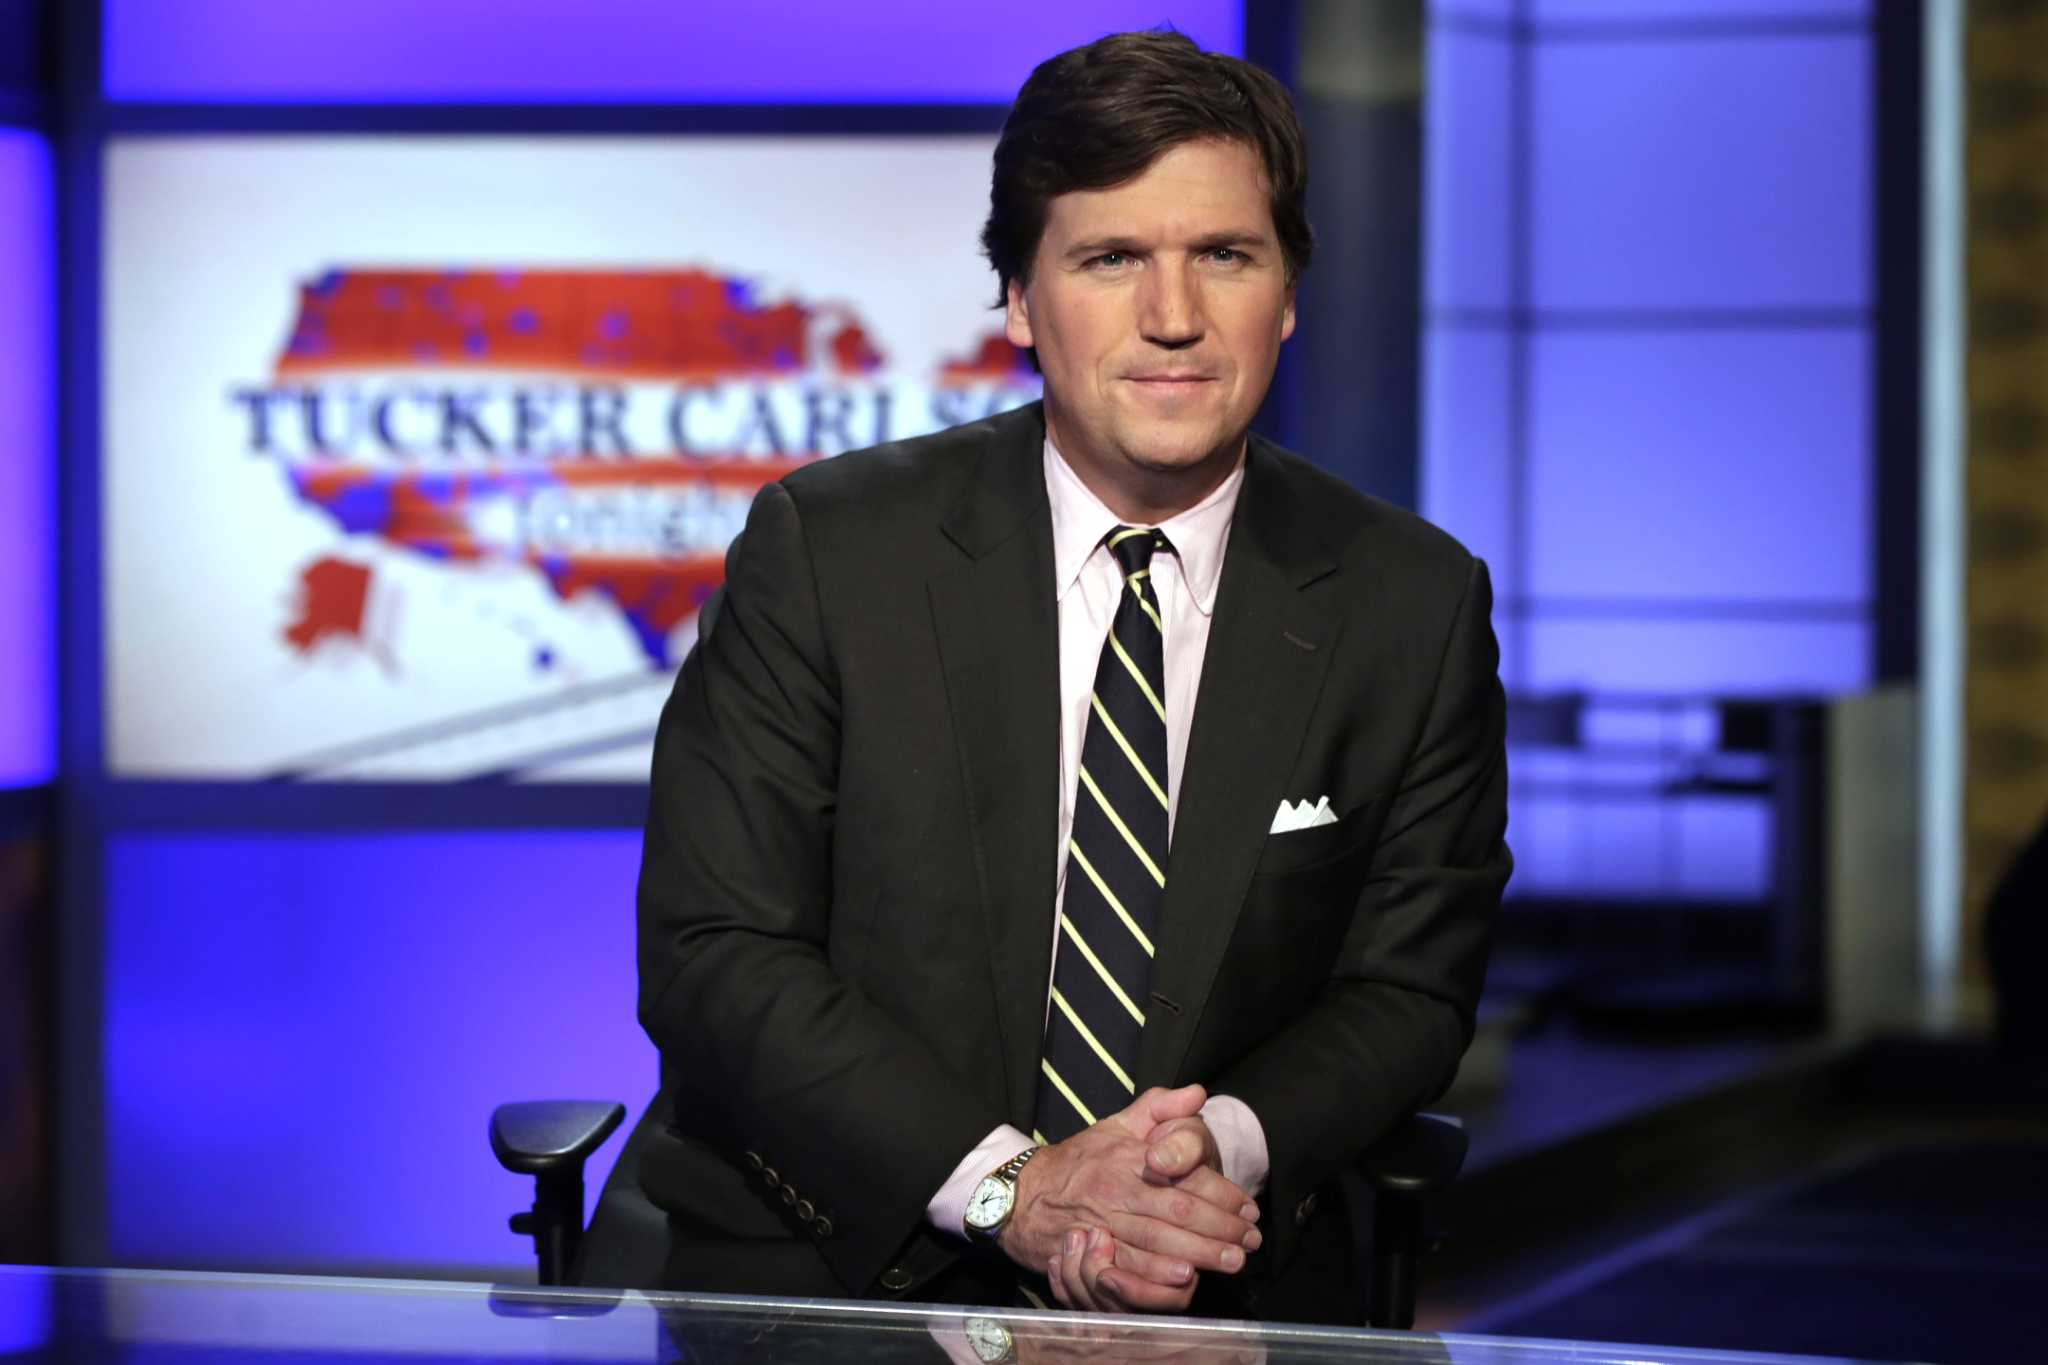 'They were threatening me and my family': Tucker Carlson's home targeted by protesters